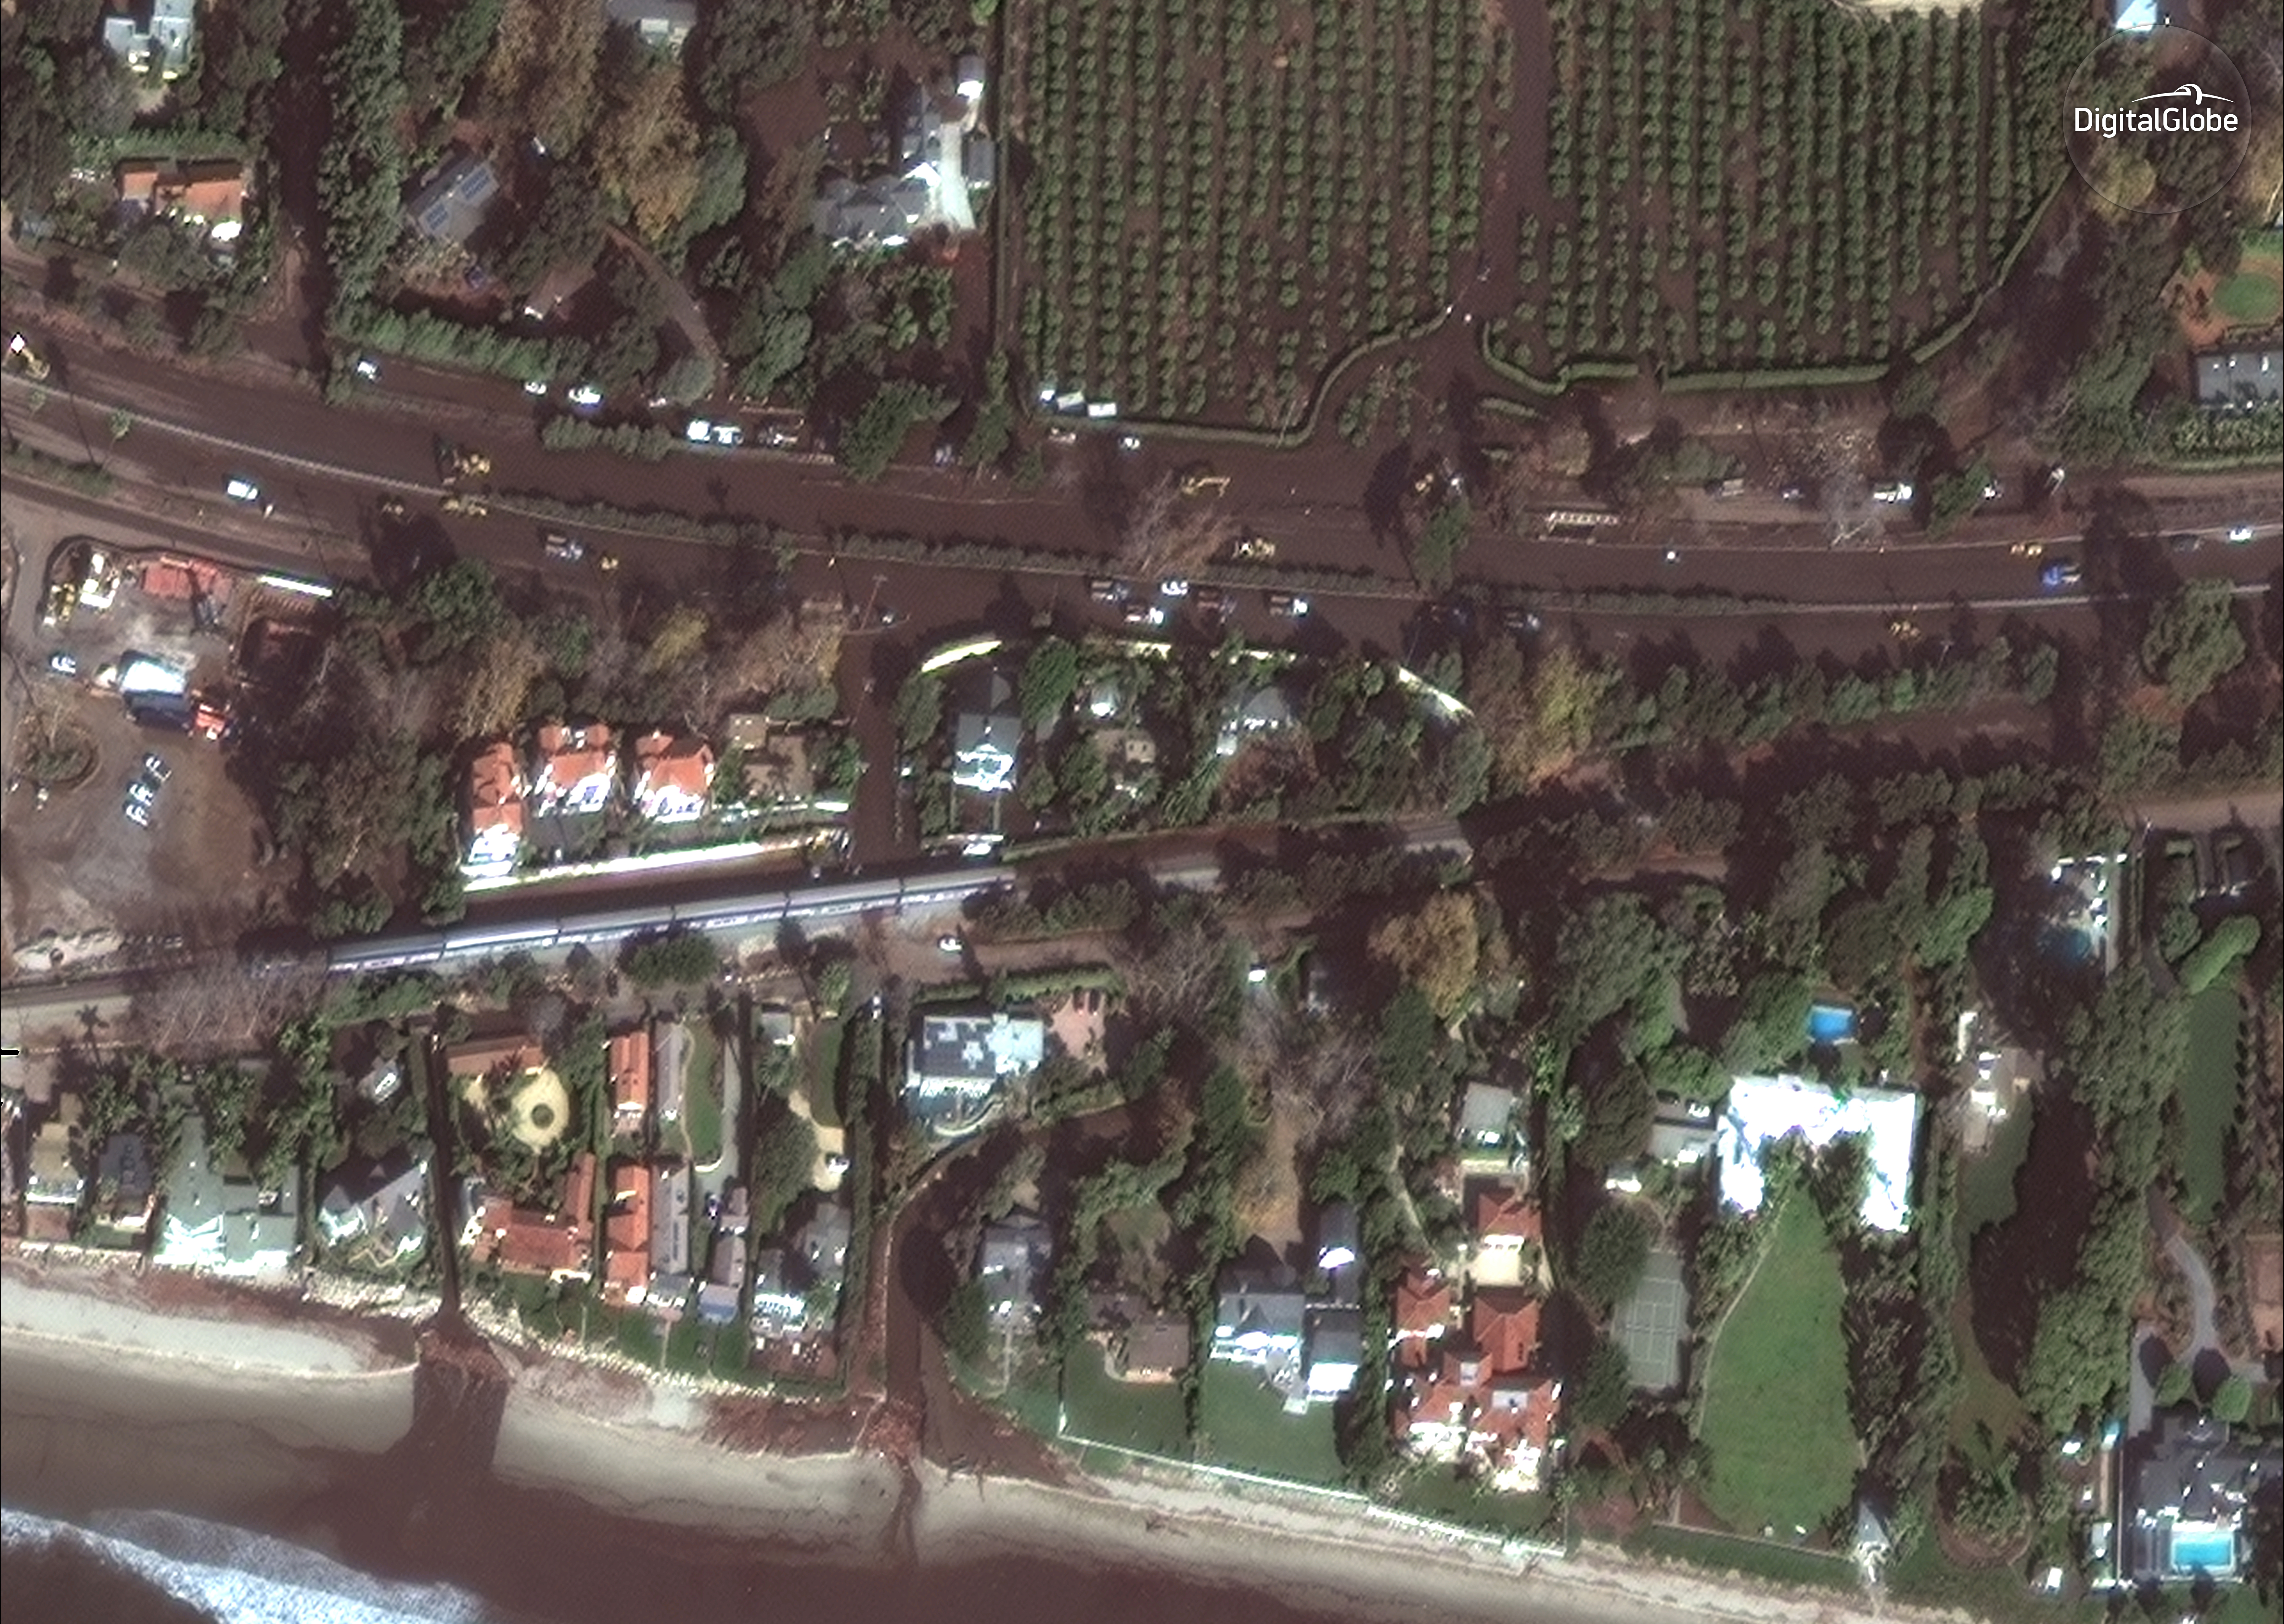 A GeoEye-1 satellite shows cleanup of Highway 101 after the mudslide in Montecito.